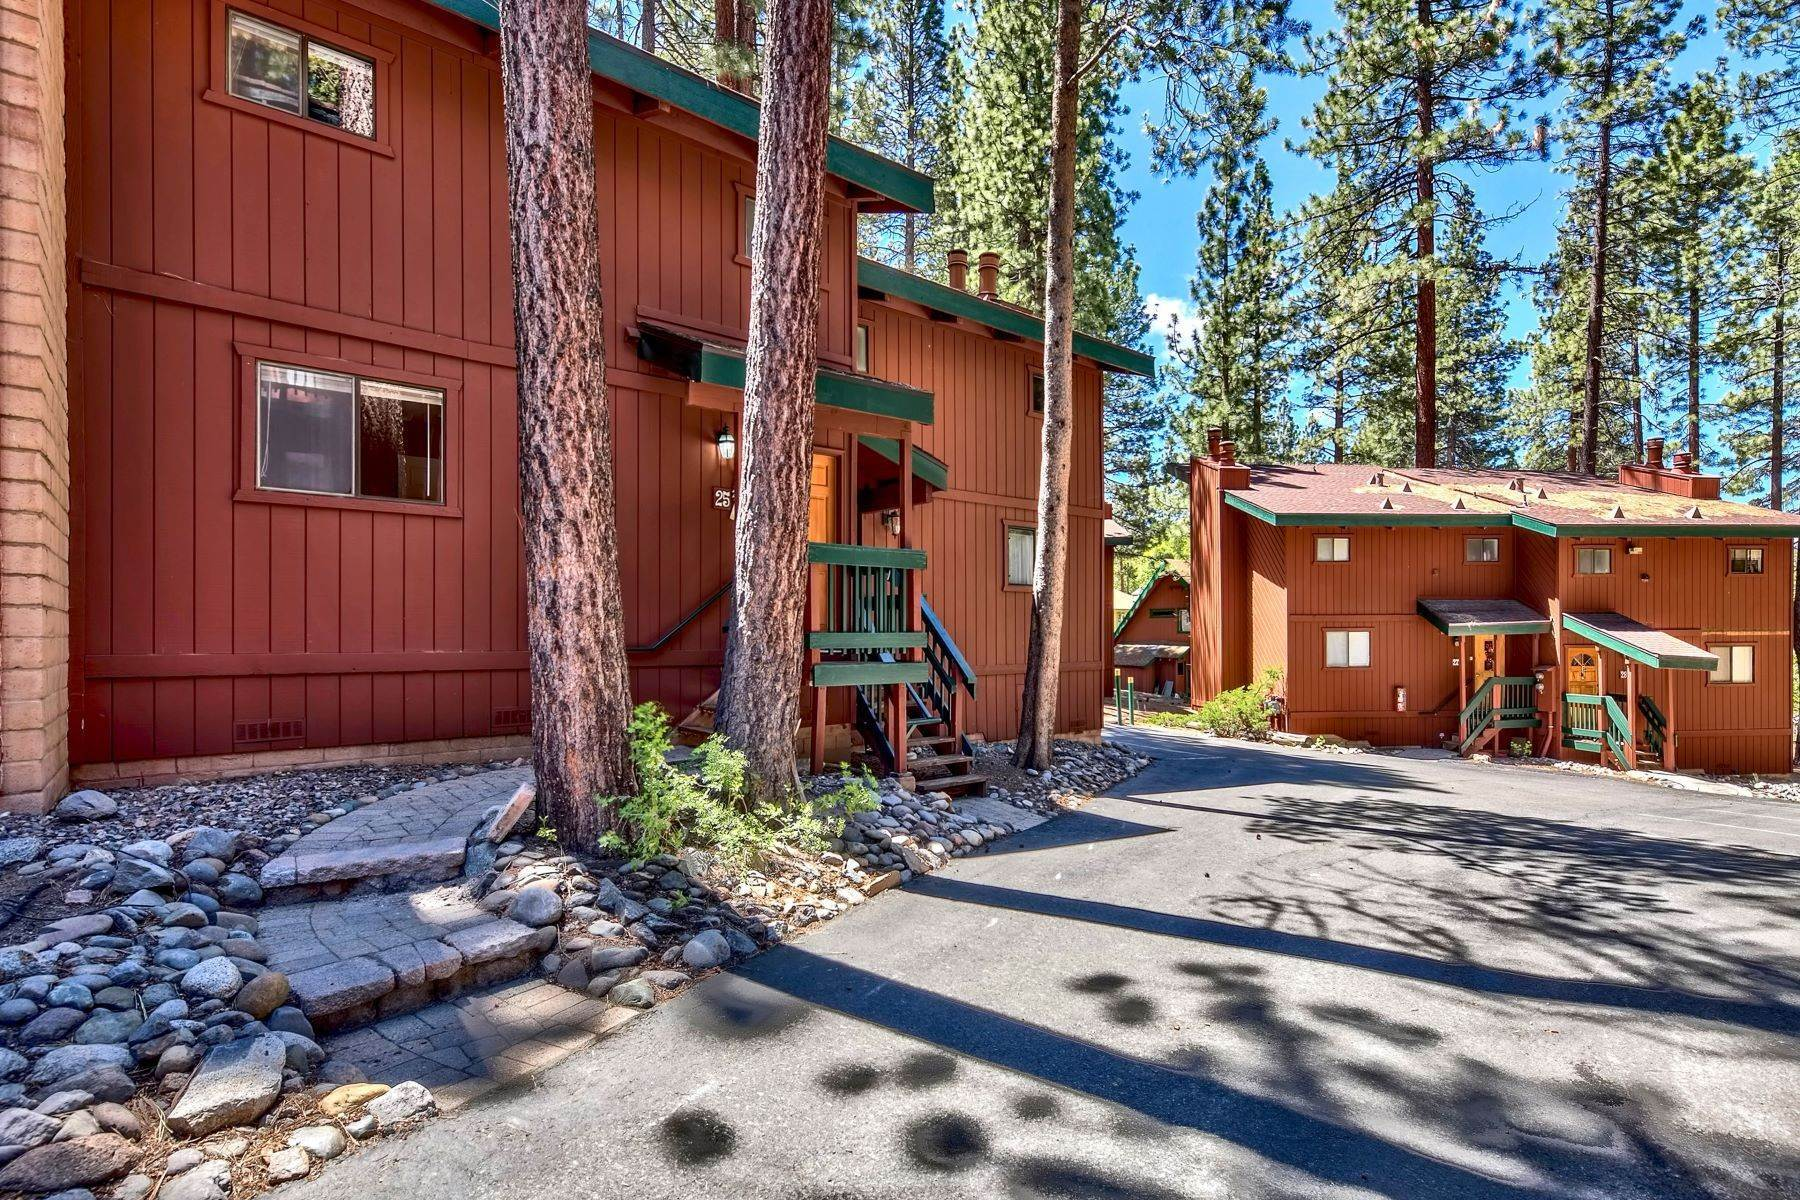 Condominiums for Active at Ski In / Ski Out Condo 1474 Keller Rd #25 South Lake Tahoe, California 96150 United States